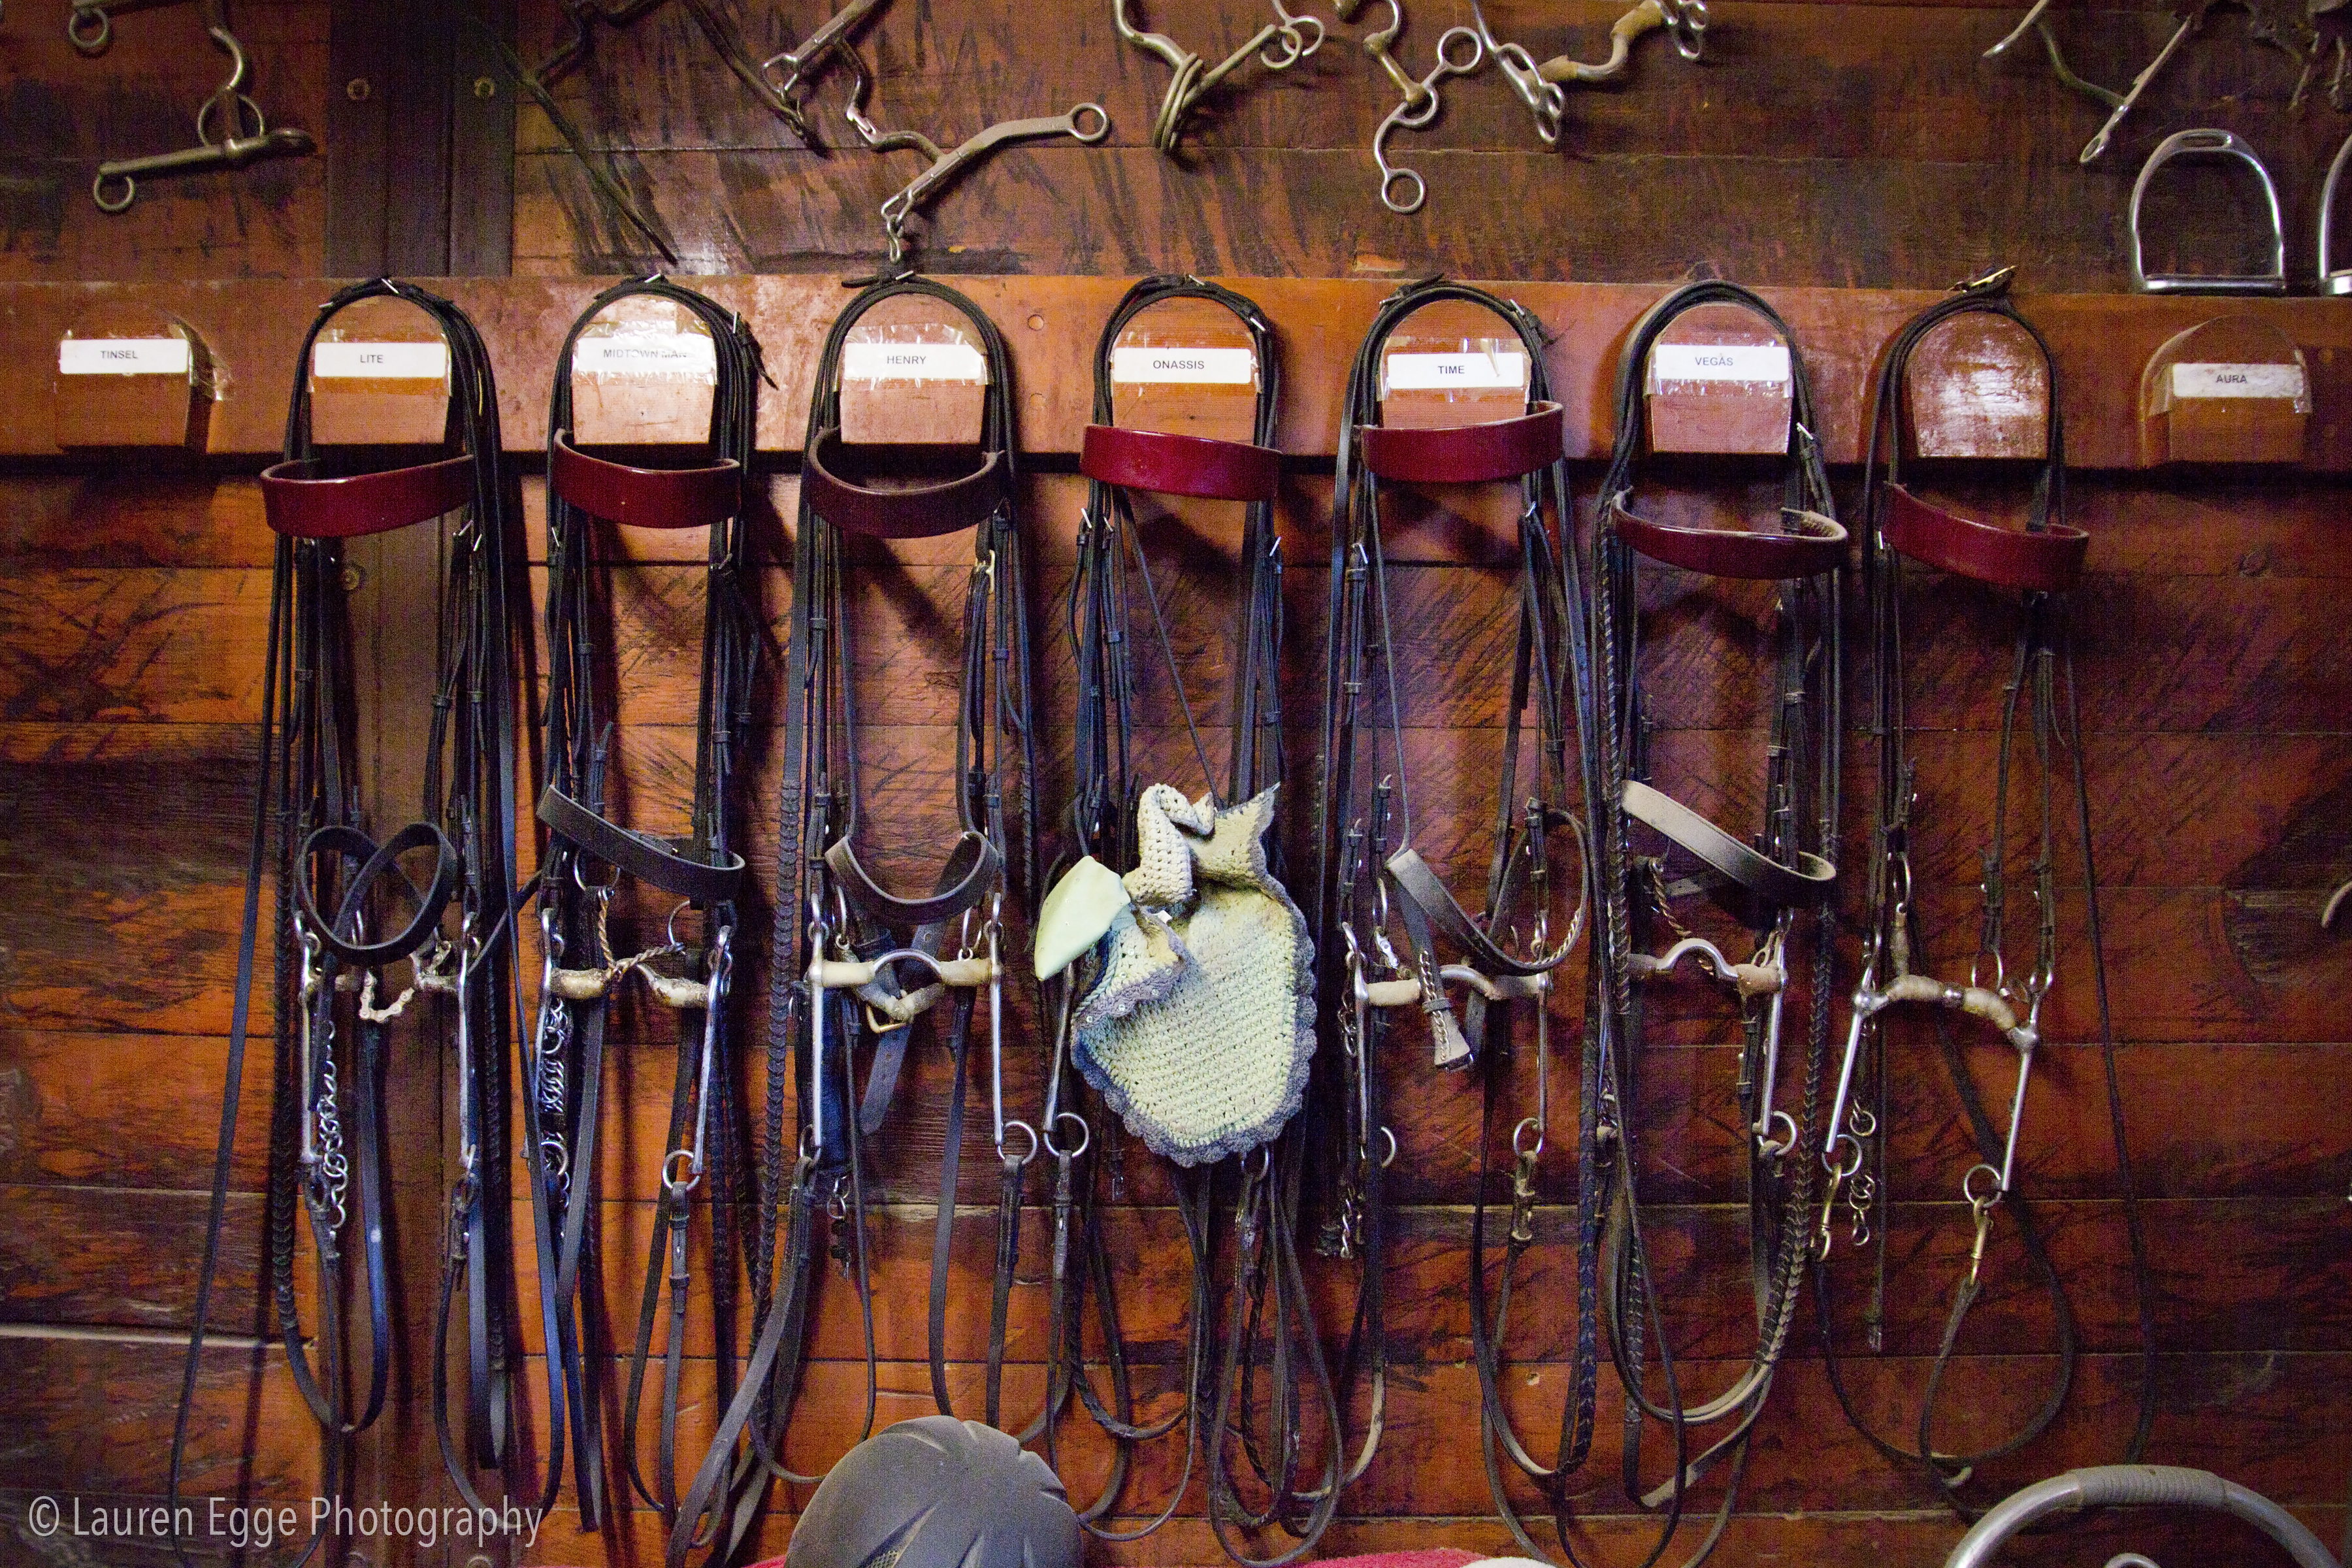 Bridles for days!